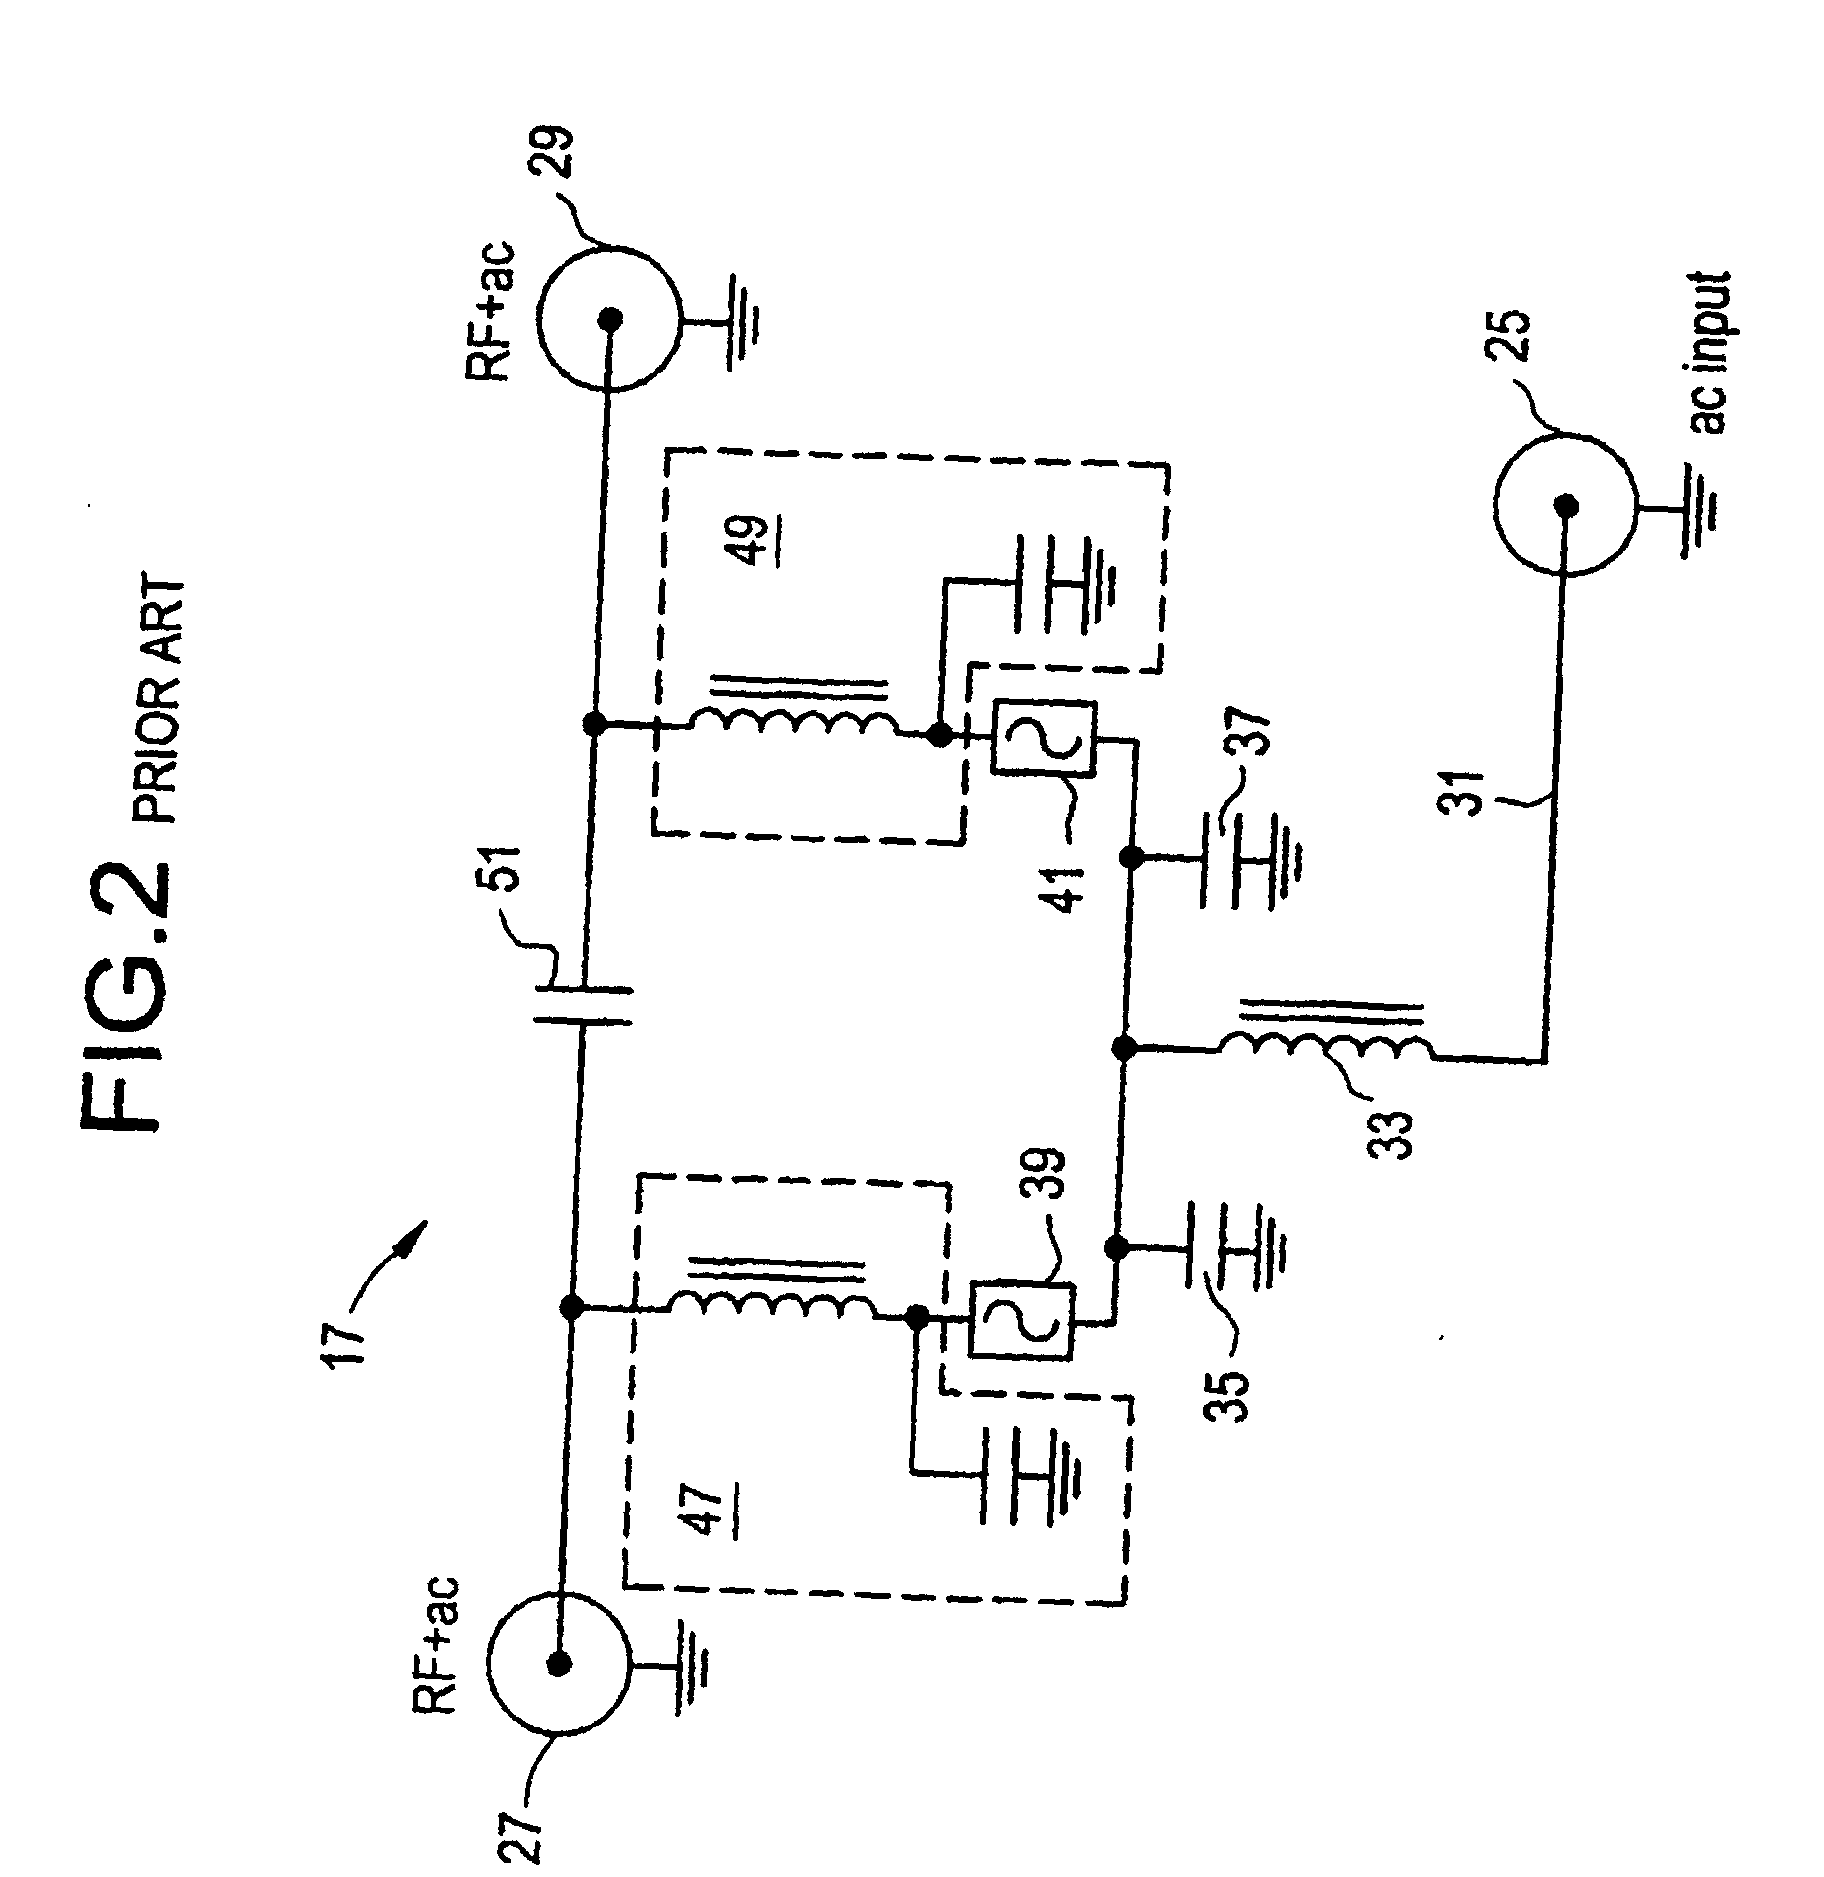 Main Disconnect Breaker Size moreover Index likewise Fuse Panel moreover Unbiased Diode Forward Biased Reverse Biased Diodebreakdownenergy Hills likewise Excitation System. on current limiting terminal block